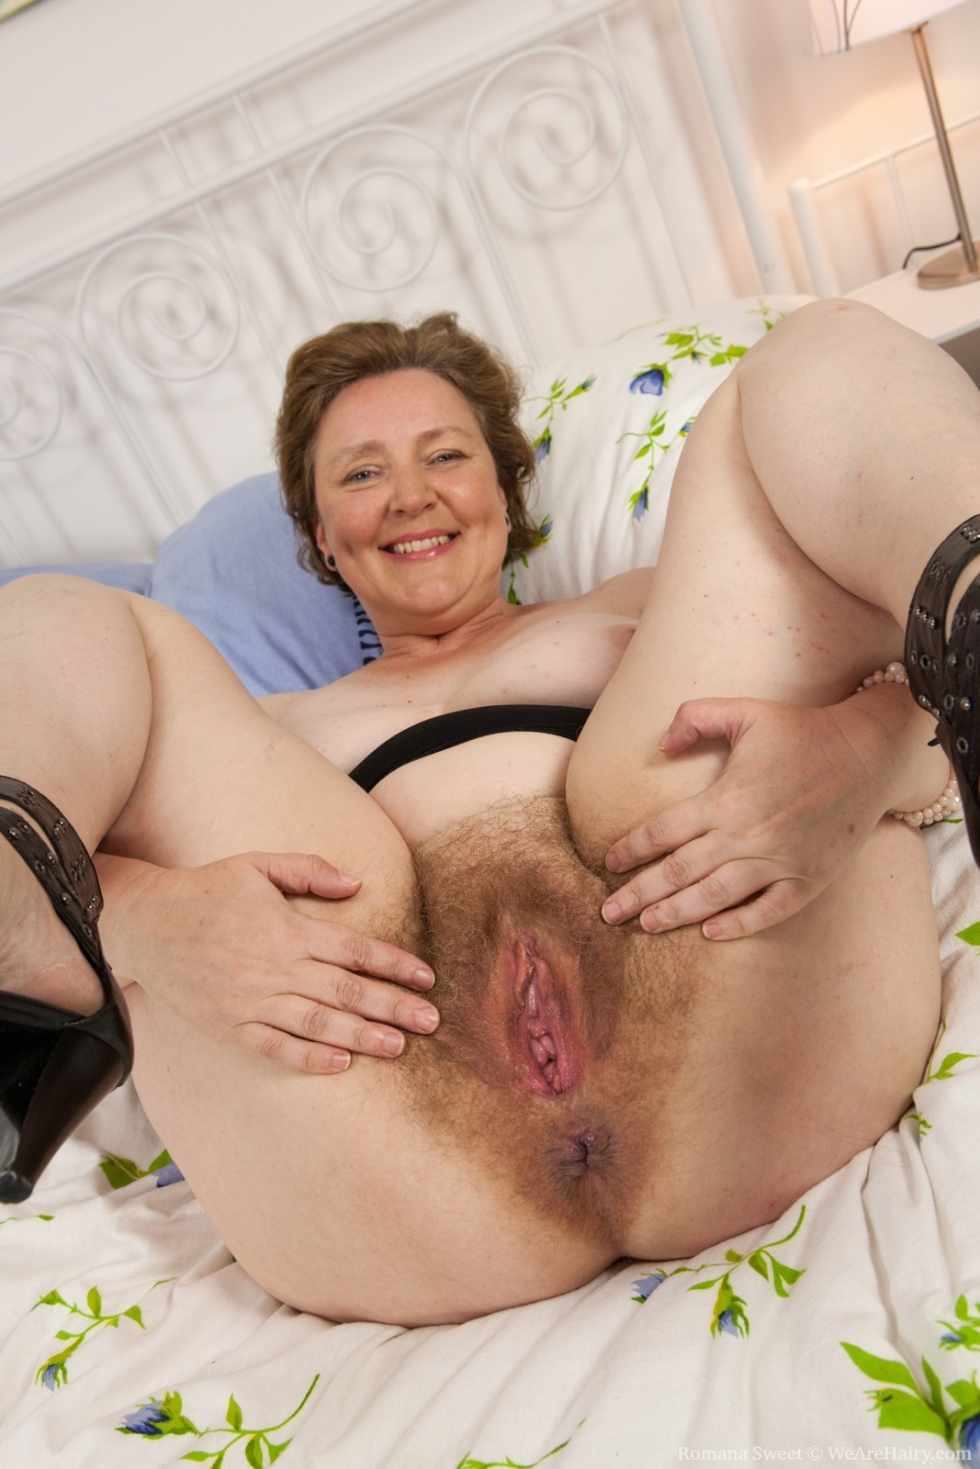 sweet mature pussy